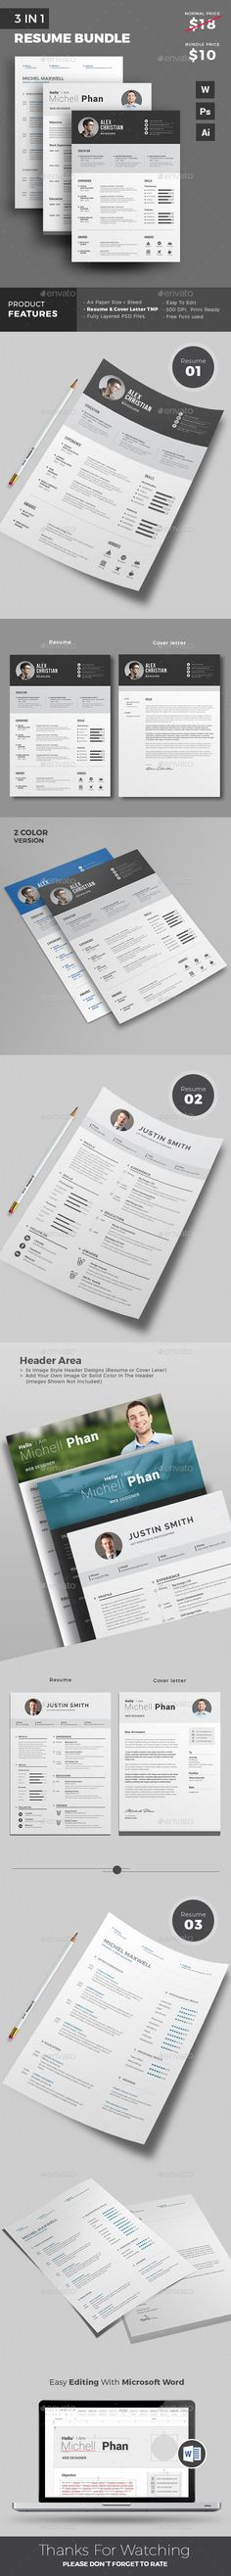 Resume Word Resume words, Cv template and Professional resume design - professional resume design templates